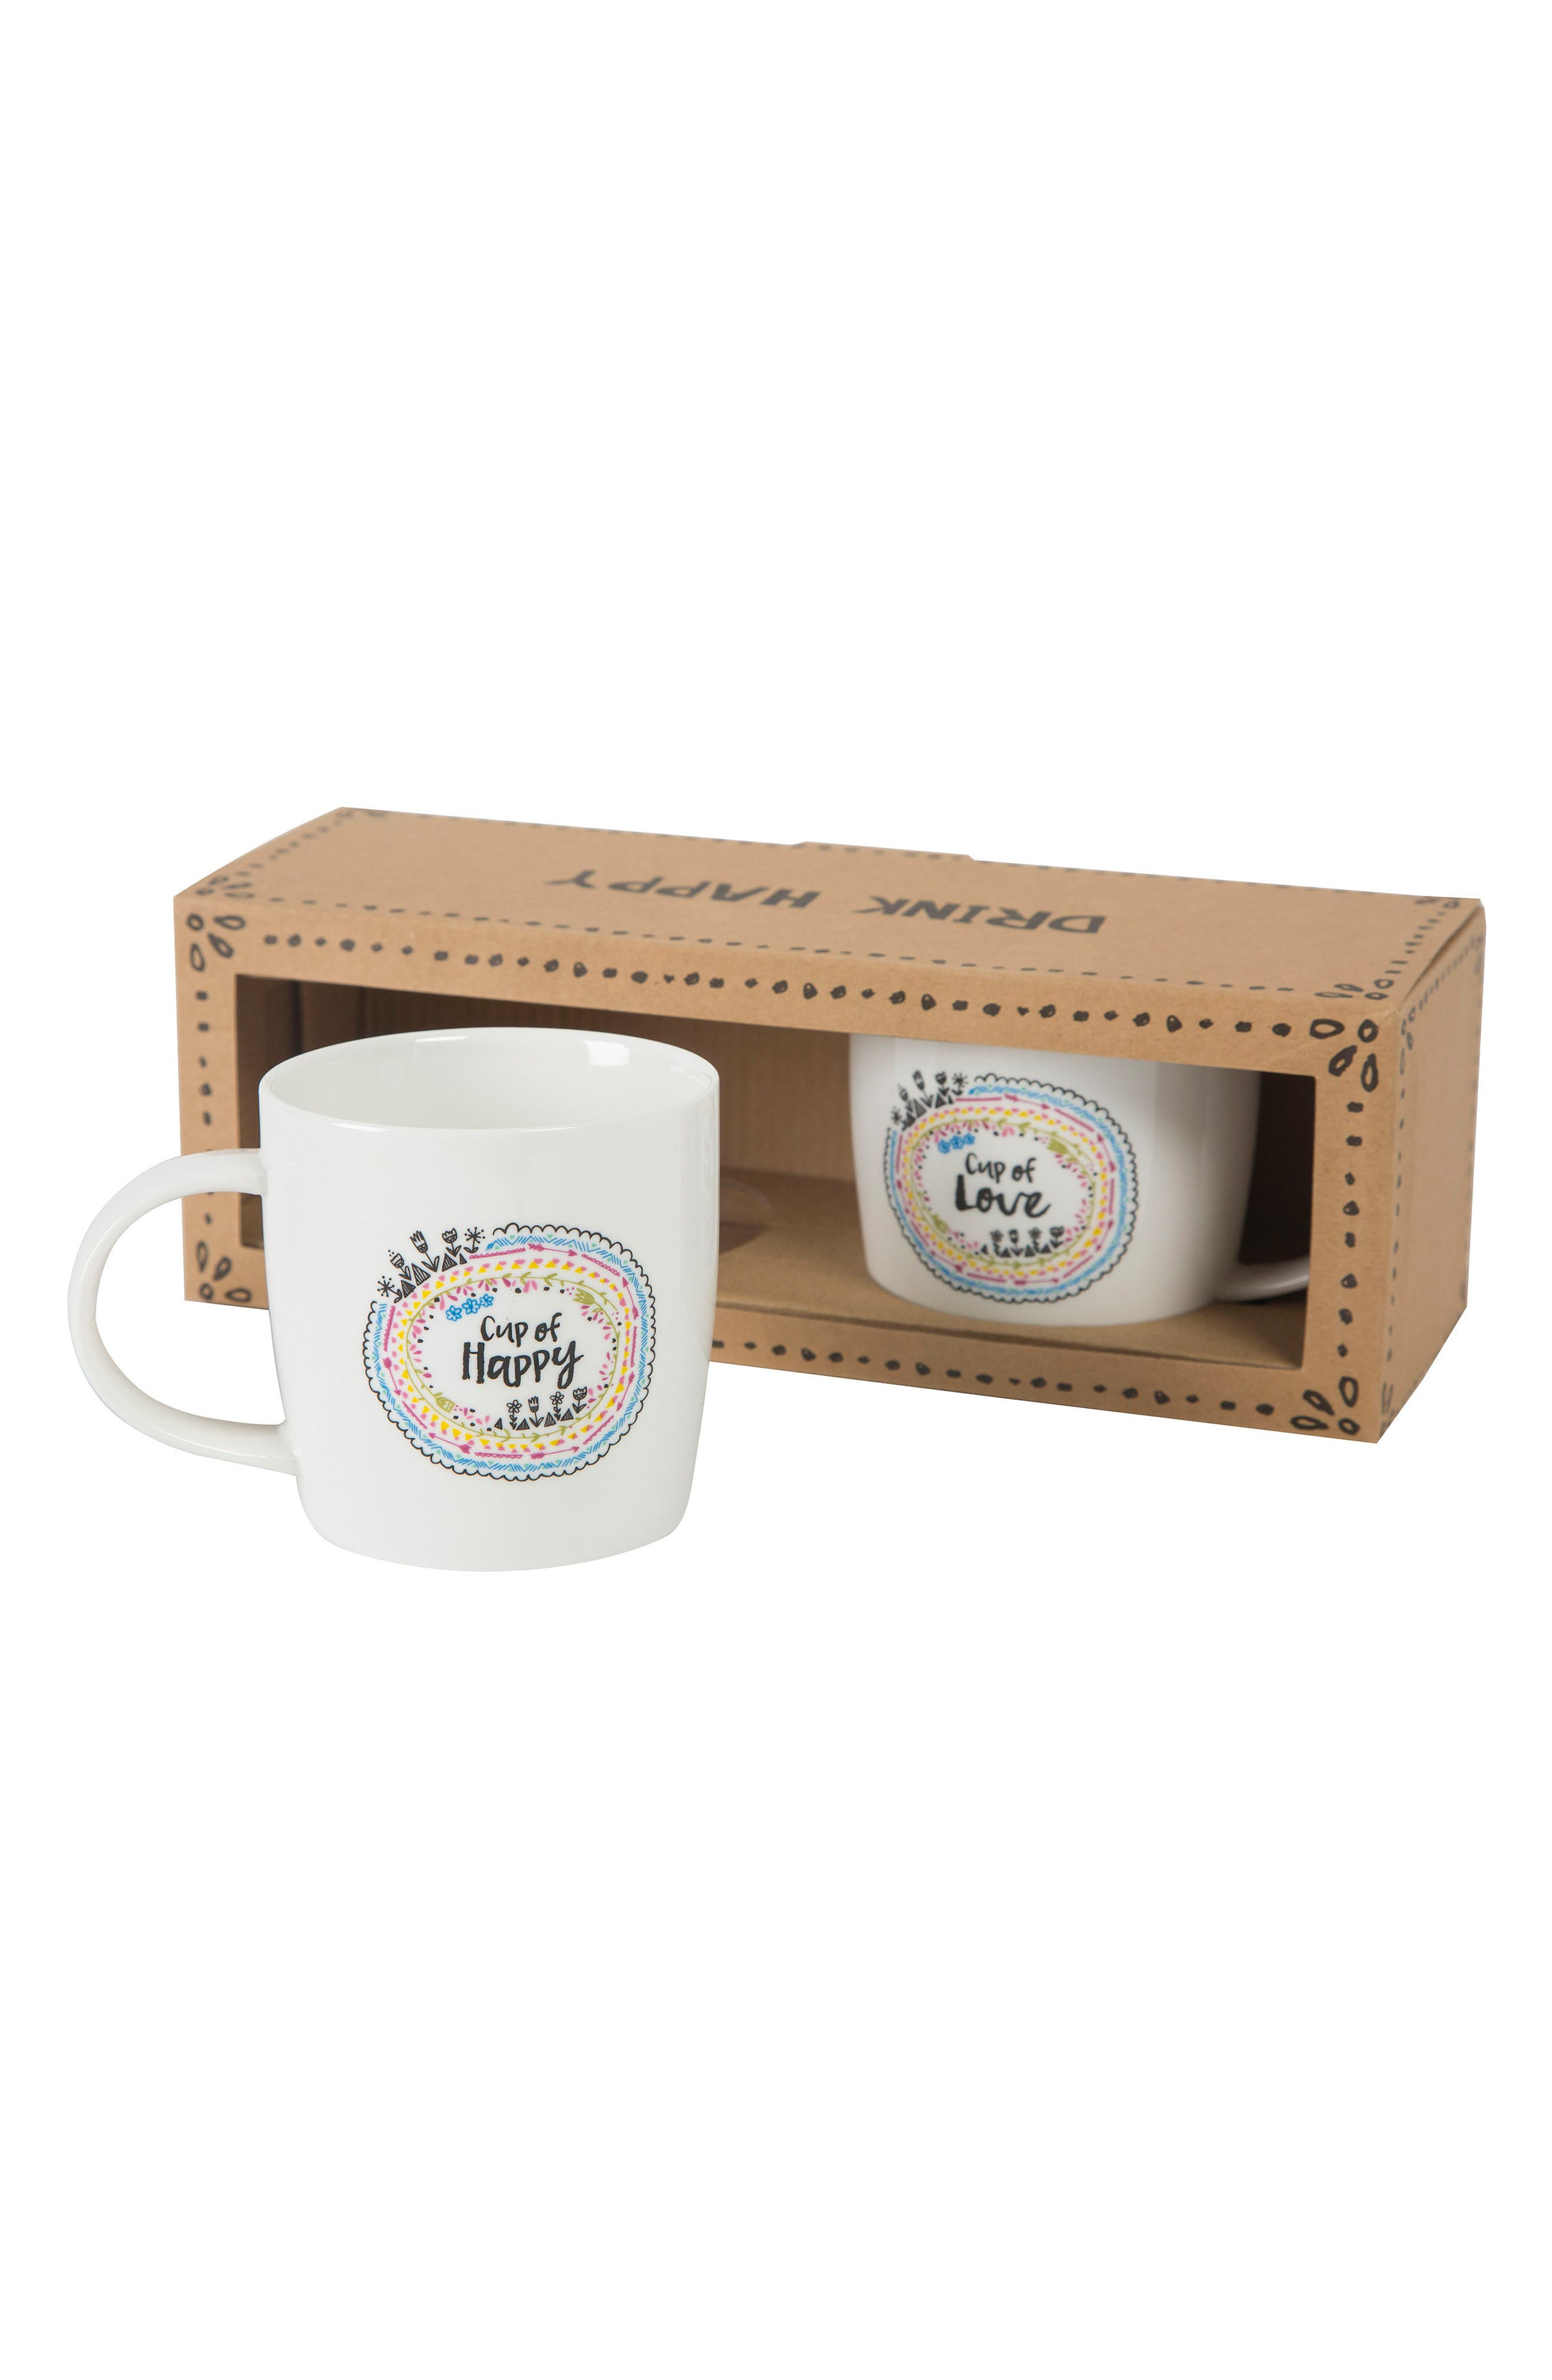 Cup of Happy & Cup of Love Set of 2 Mugs,                             Alternate thumbnail 2, color,                             900